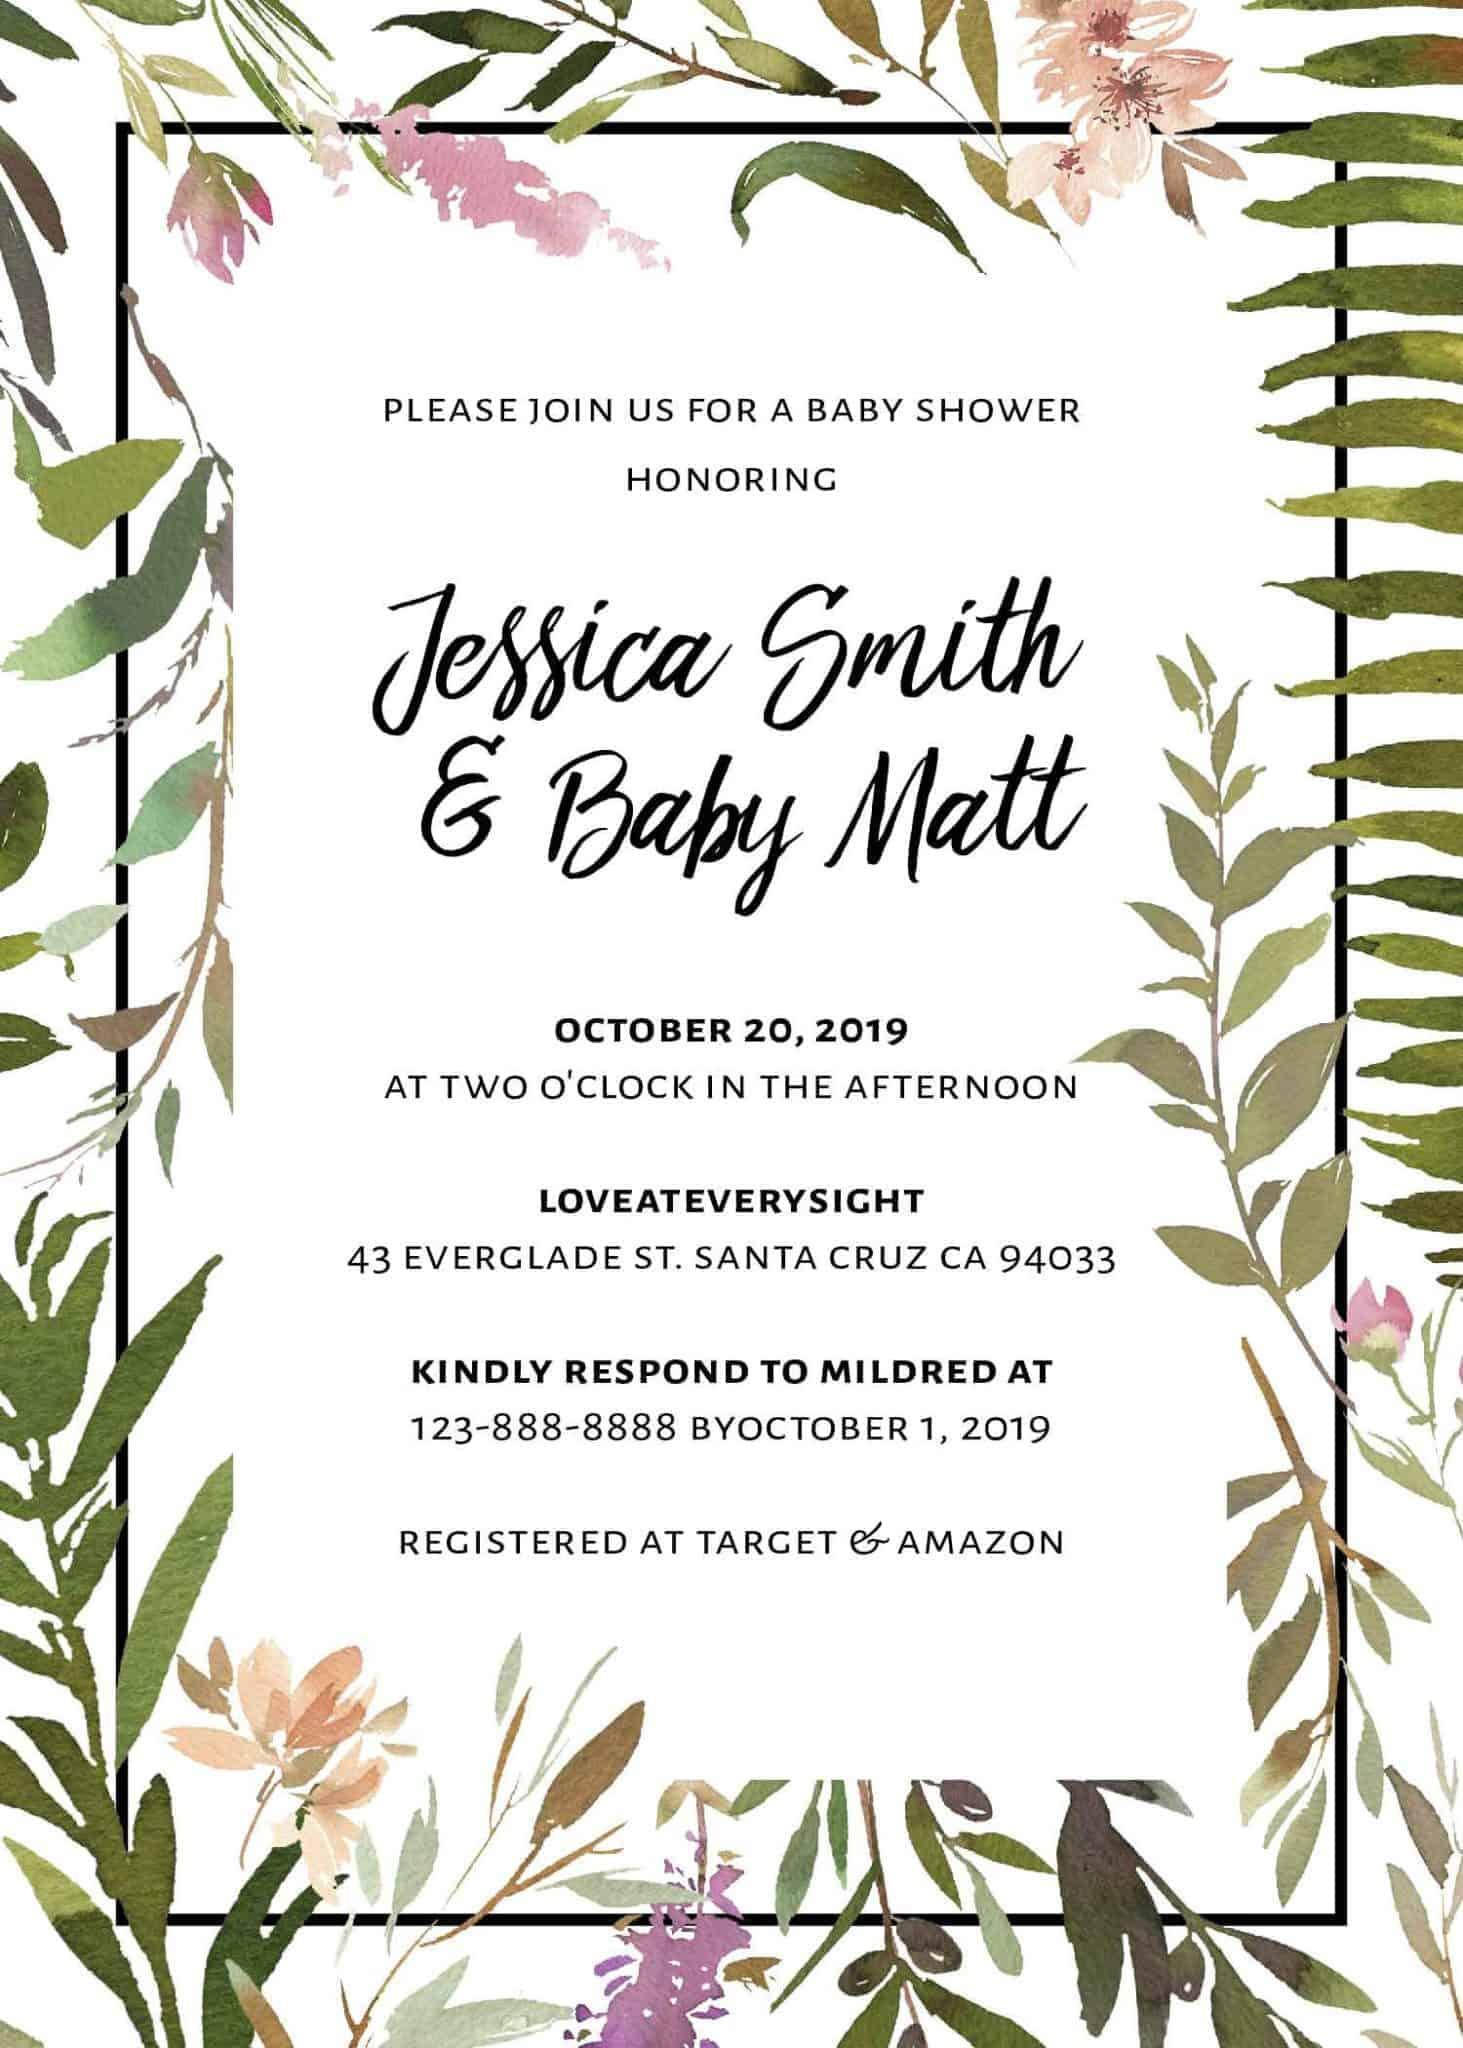 Exotic Meadow Baby Shower Invitation card, Baby Arrival Party Celebration, Mommy and Baby Enjoyment Invitation Card